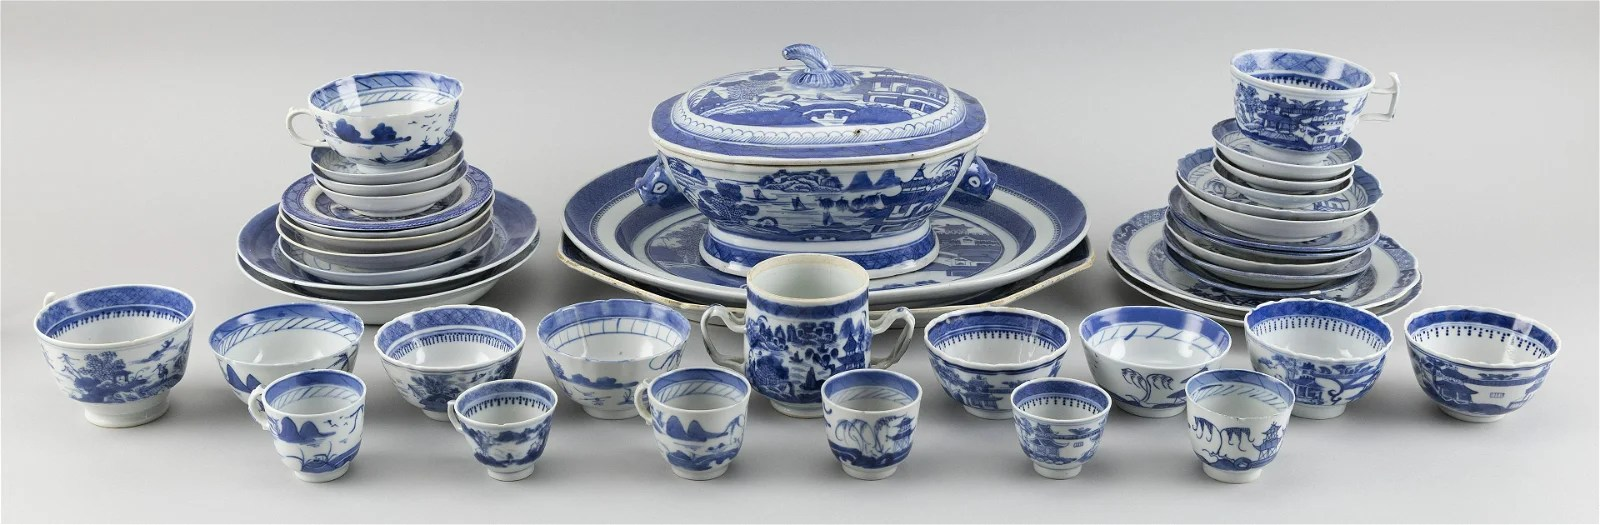 THIRTY-NINE PIECES OF CHINESE EXPORT CANTON PORCELAIN